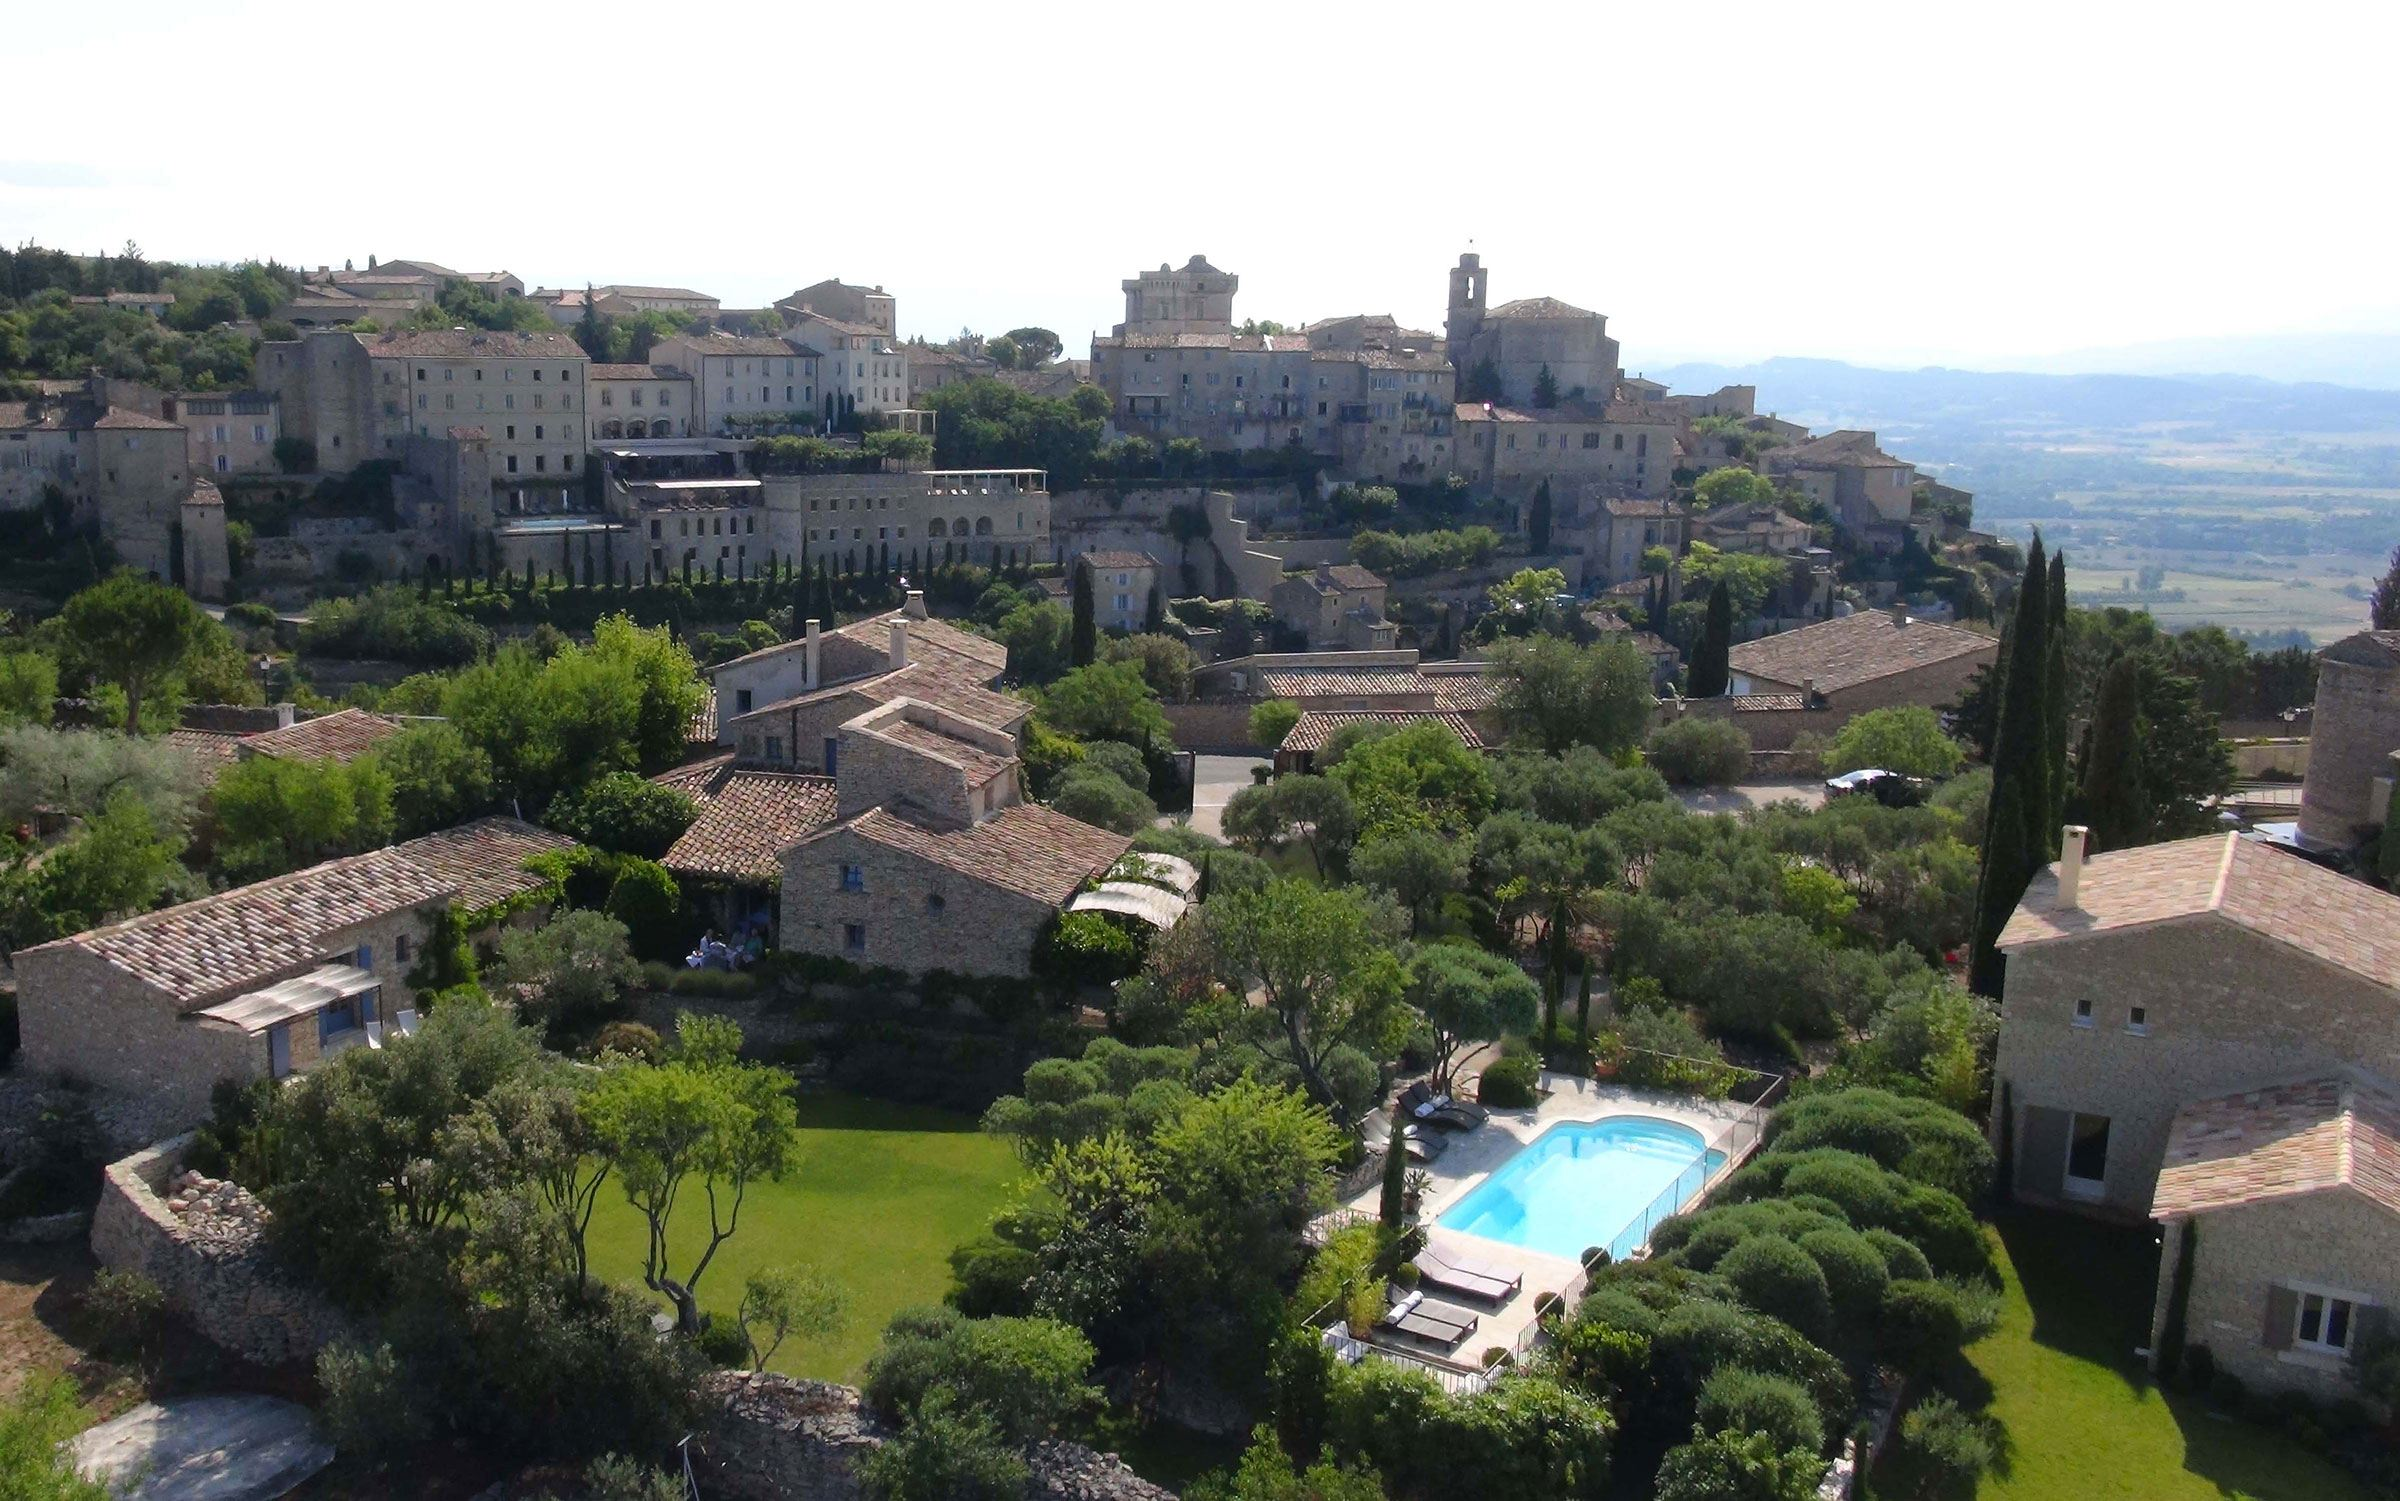 Single Family Home for Sale at Mas provençal Gordes, Provence-Alpes-Cote D'Azur, 84220 France